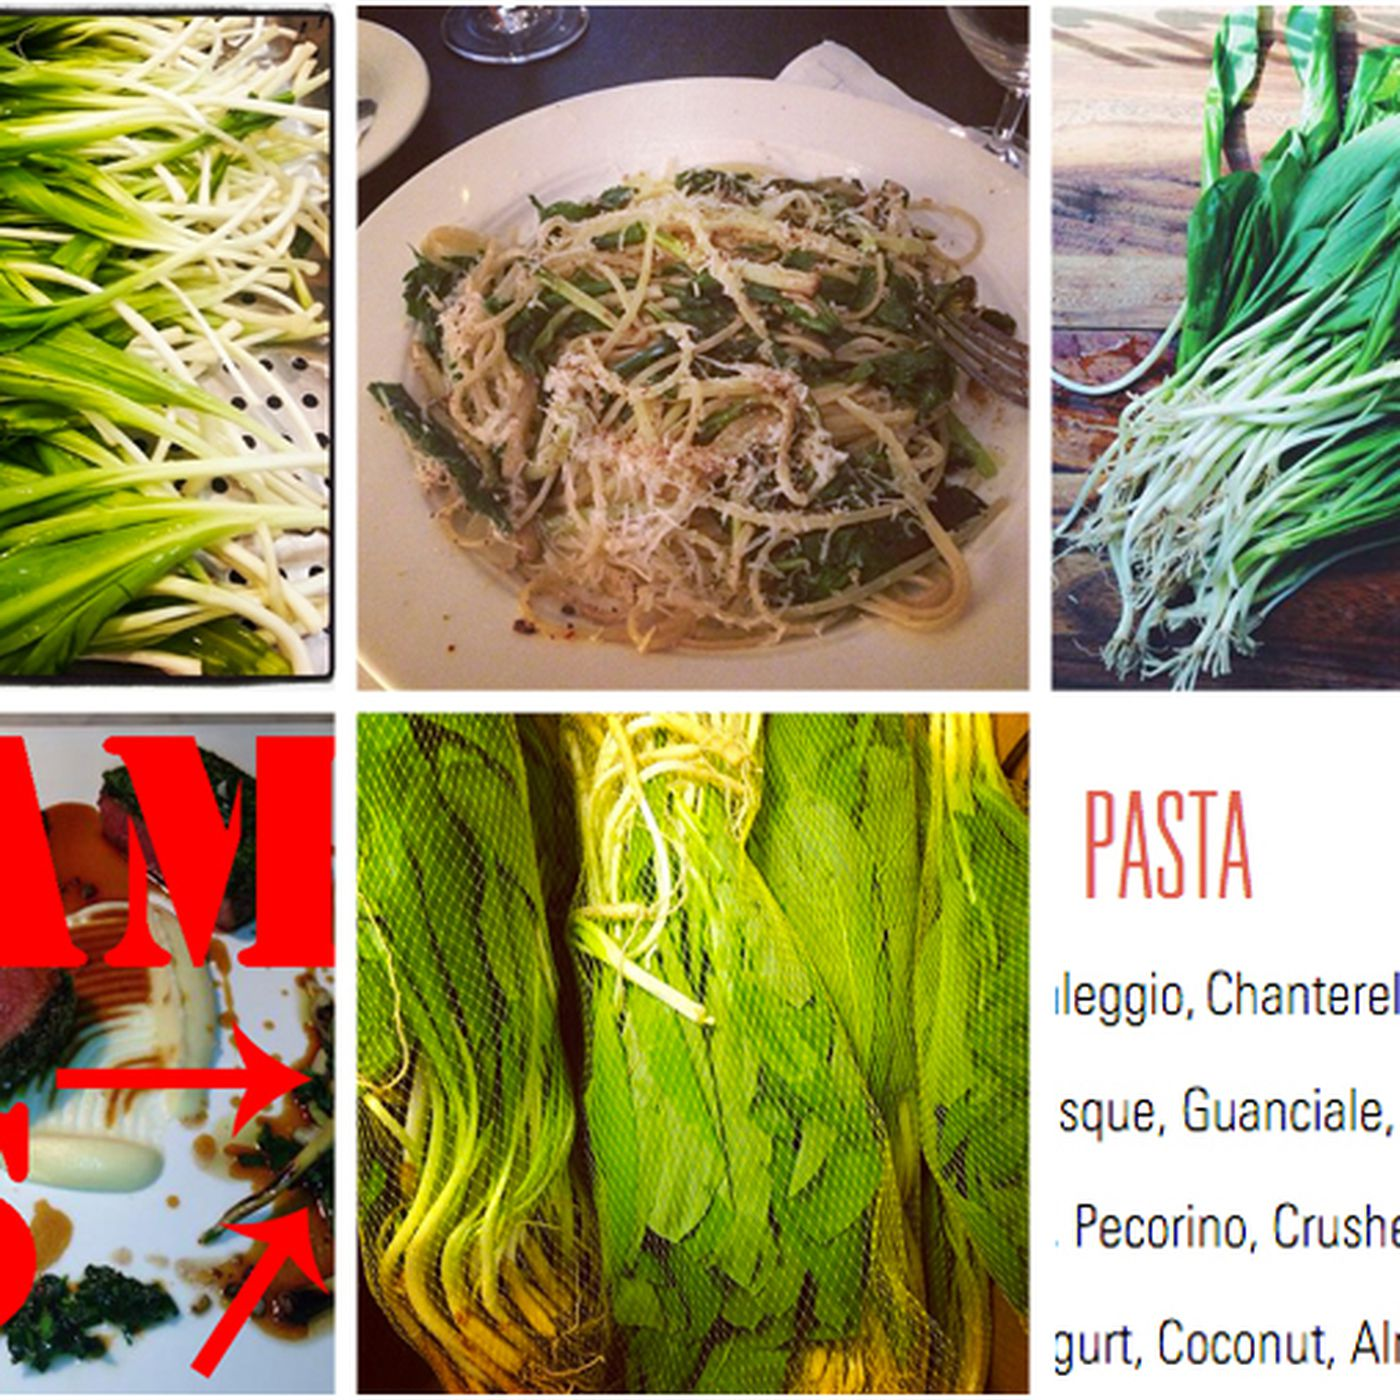 Nyc Begins Its Spring Fling With Ramps Ramps Ramps Eater Ny